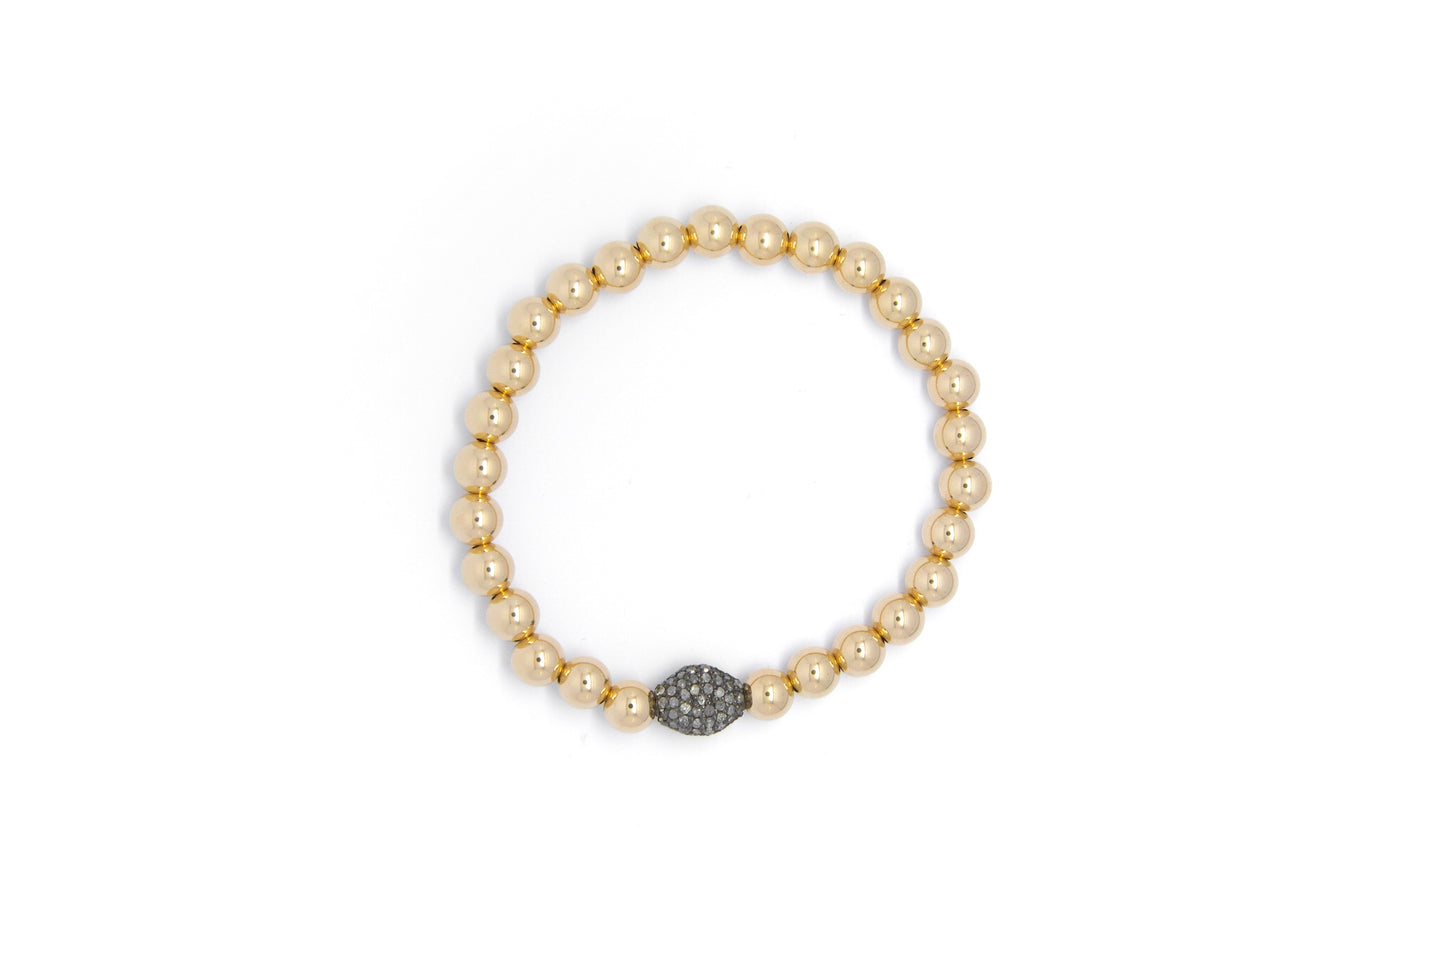 Medium Gold Bracelet + Diamond Oval